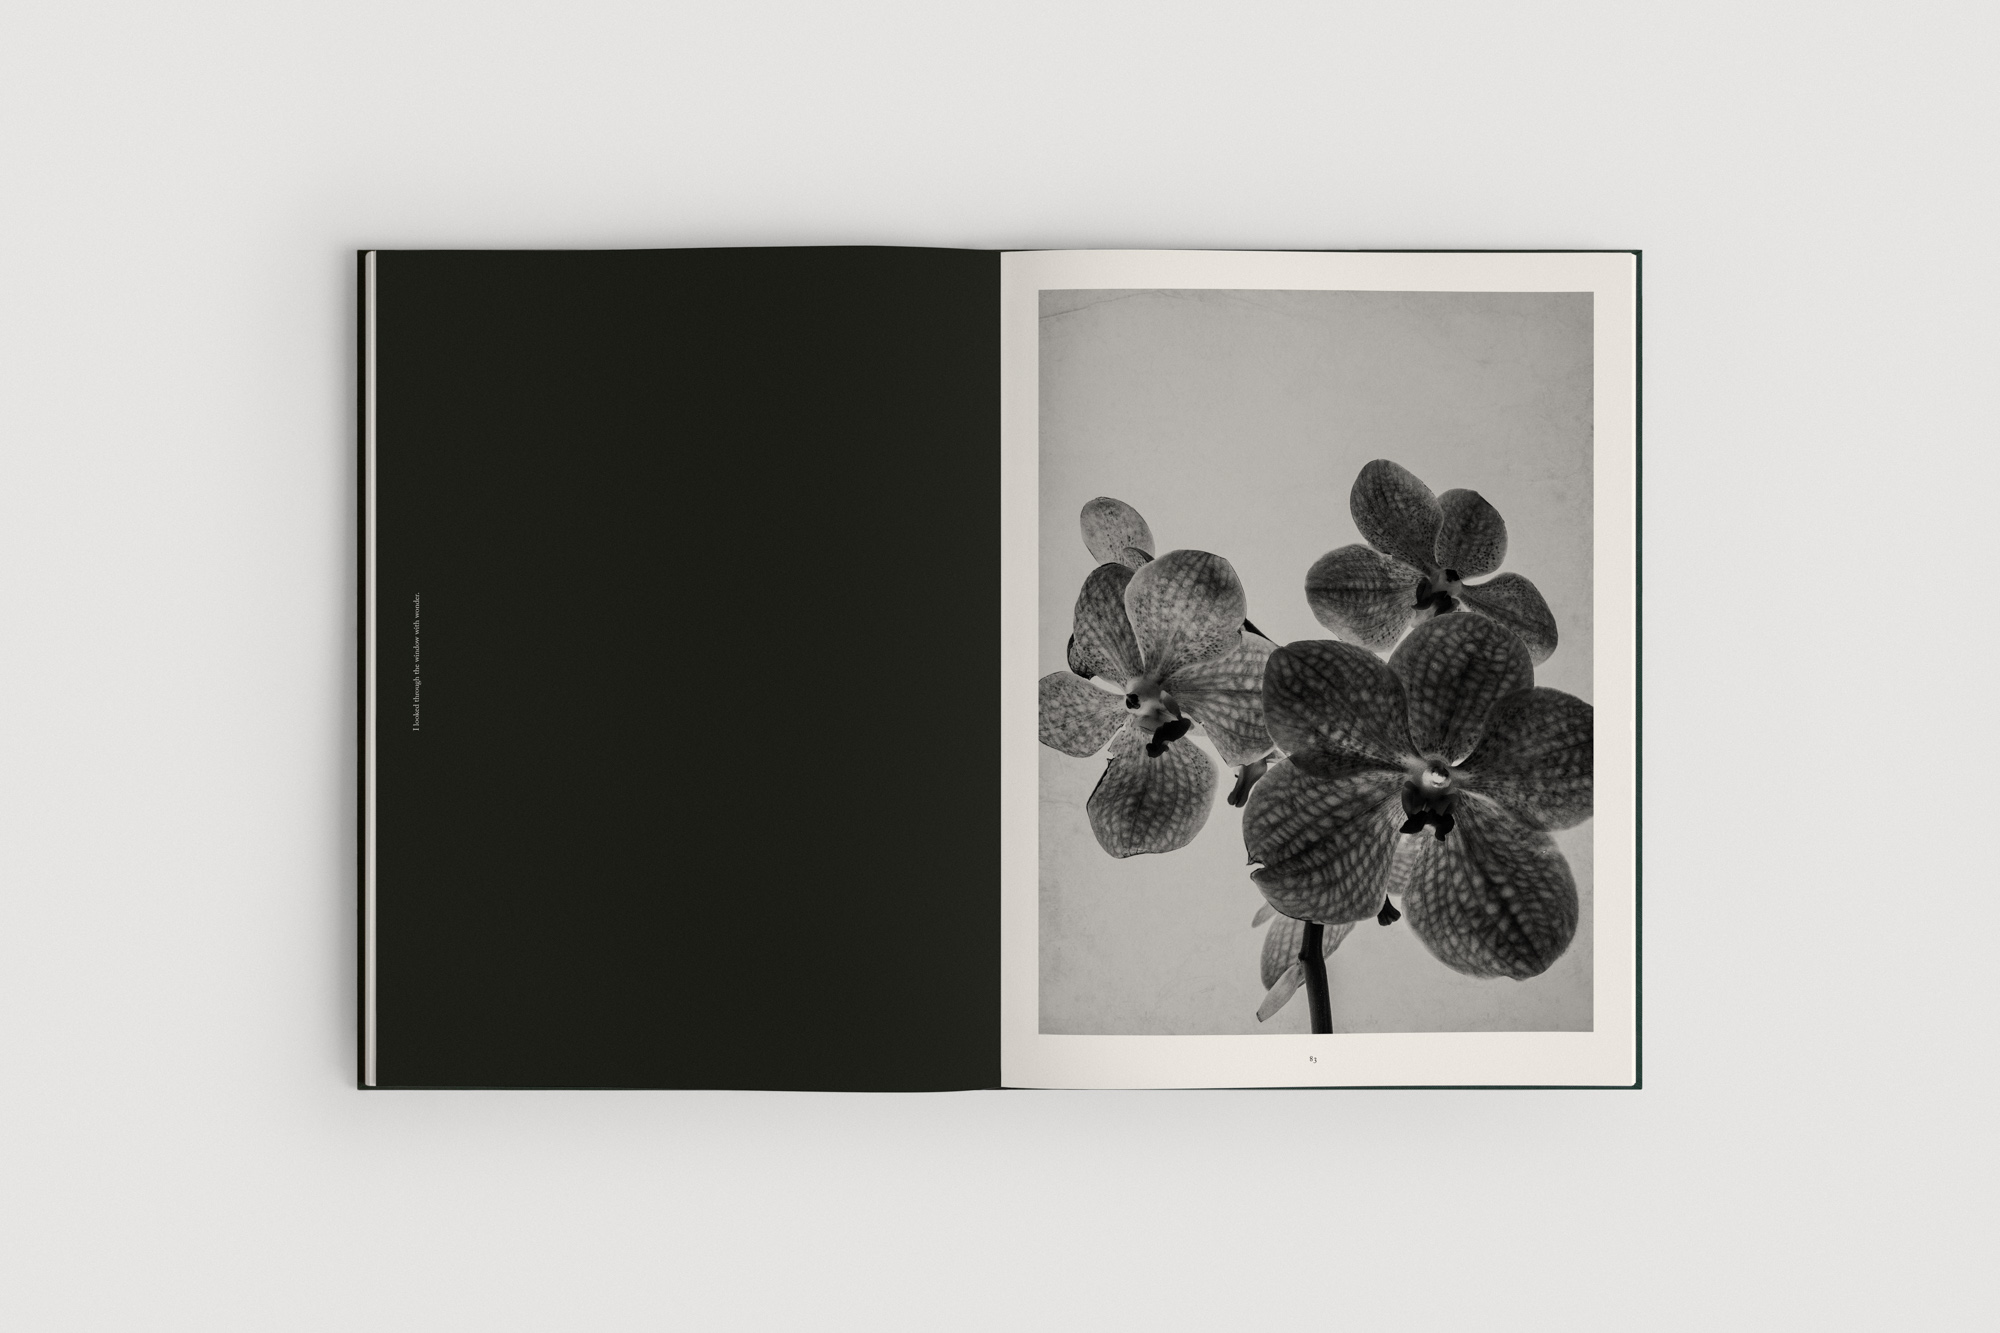 Jonas-Bjerre-Poulsen-The-Reinvention-of-Forms-Book-Packshots-Web-08